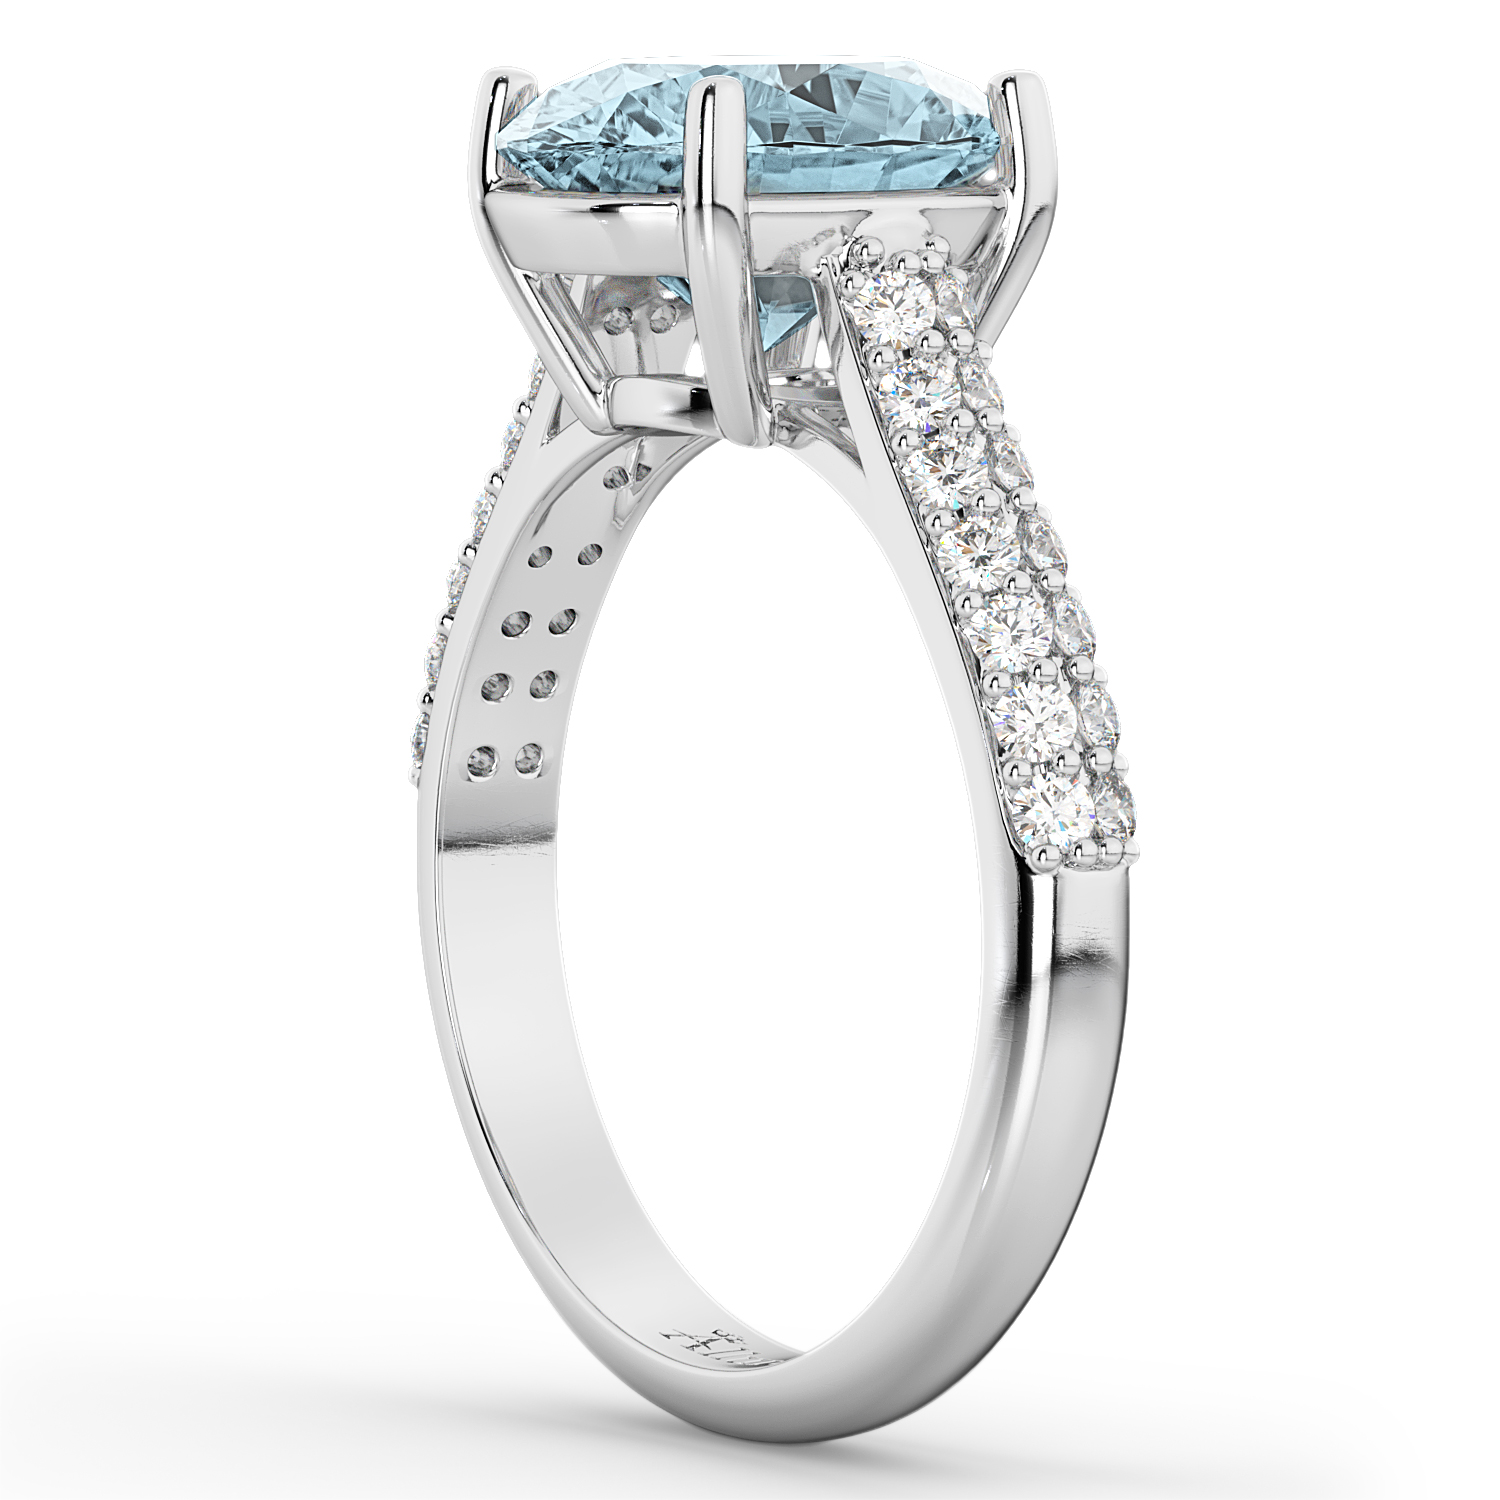 Oval Aquamarine & Diamond Engagement Ring 14k White Gold 4